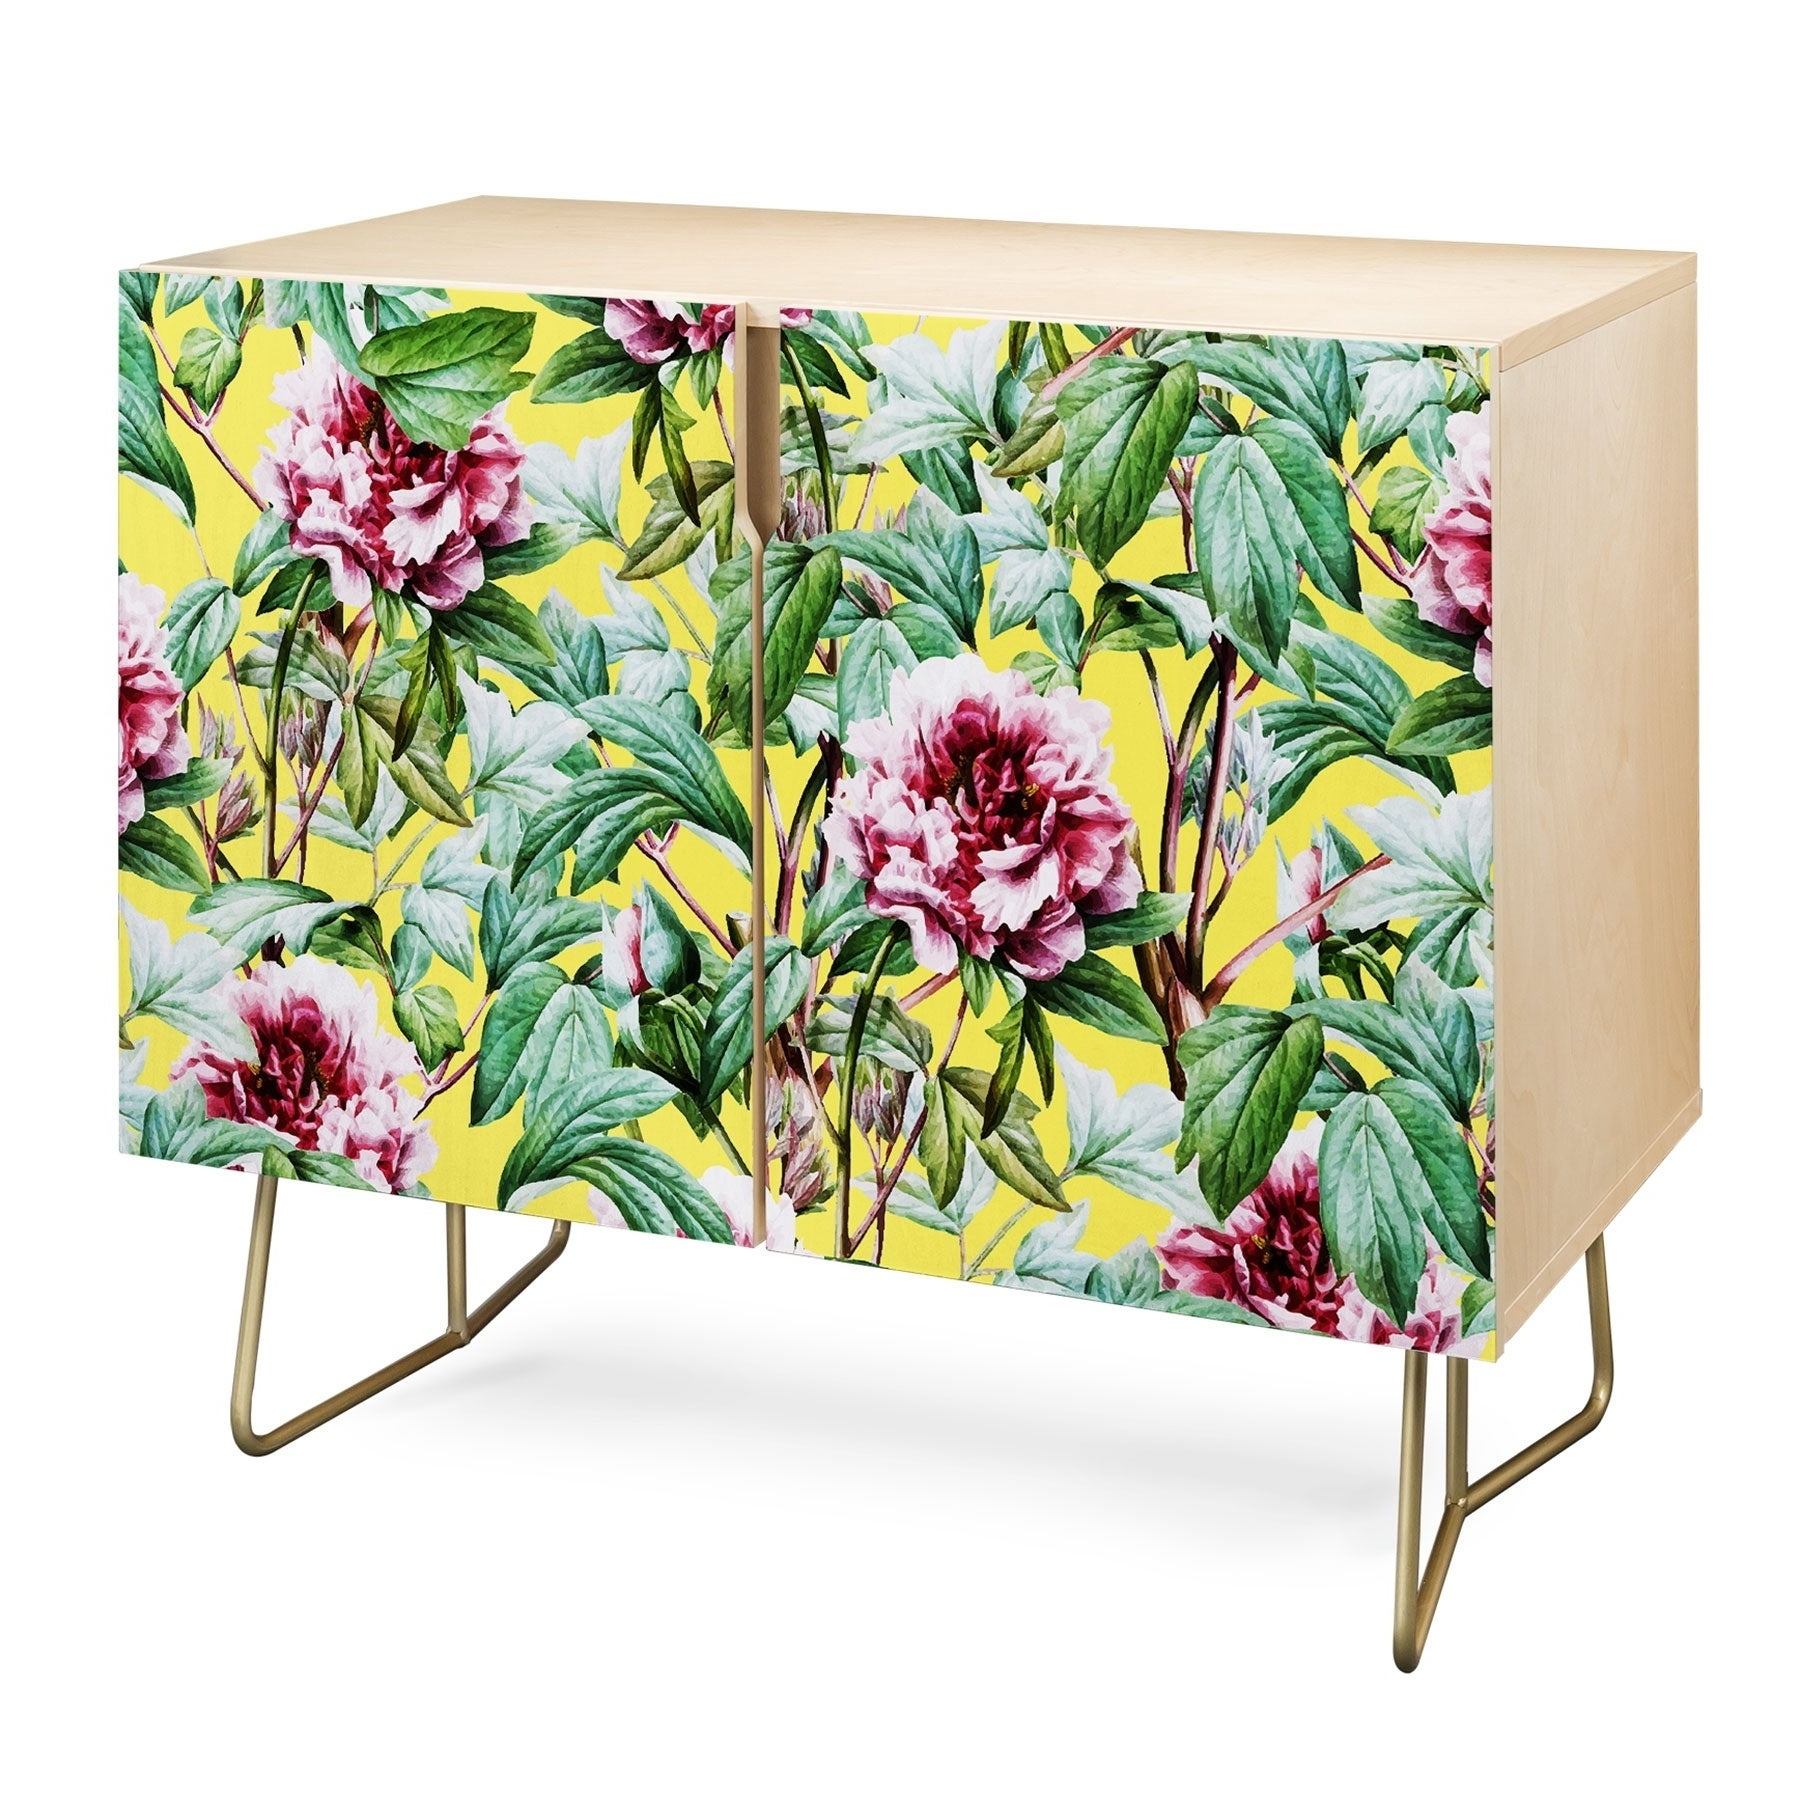 Deny Designs Yellow Flora Credenza (Birch Or Walnut, 2 Leg Options) Throughout Floral Blush Yellow Credenzas (View 5 of 20)